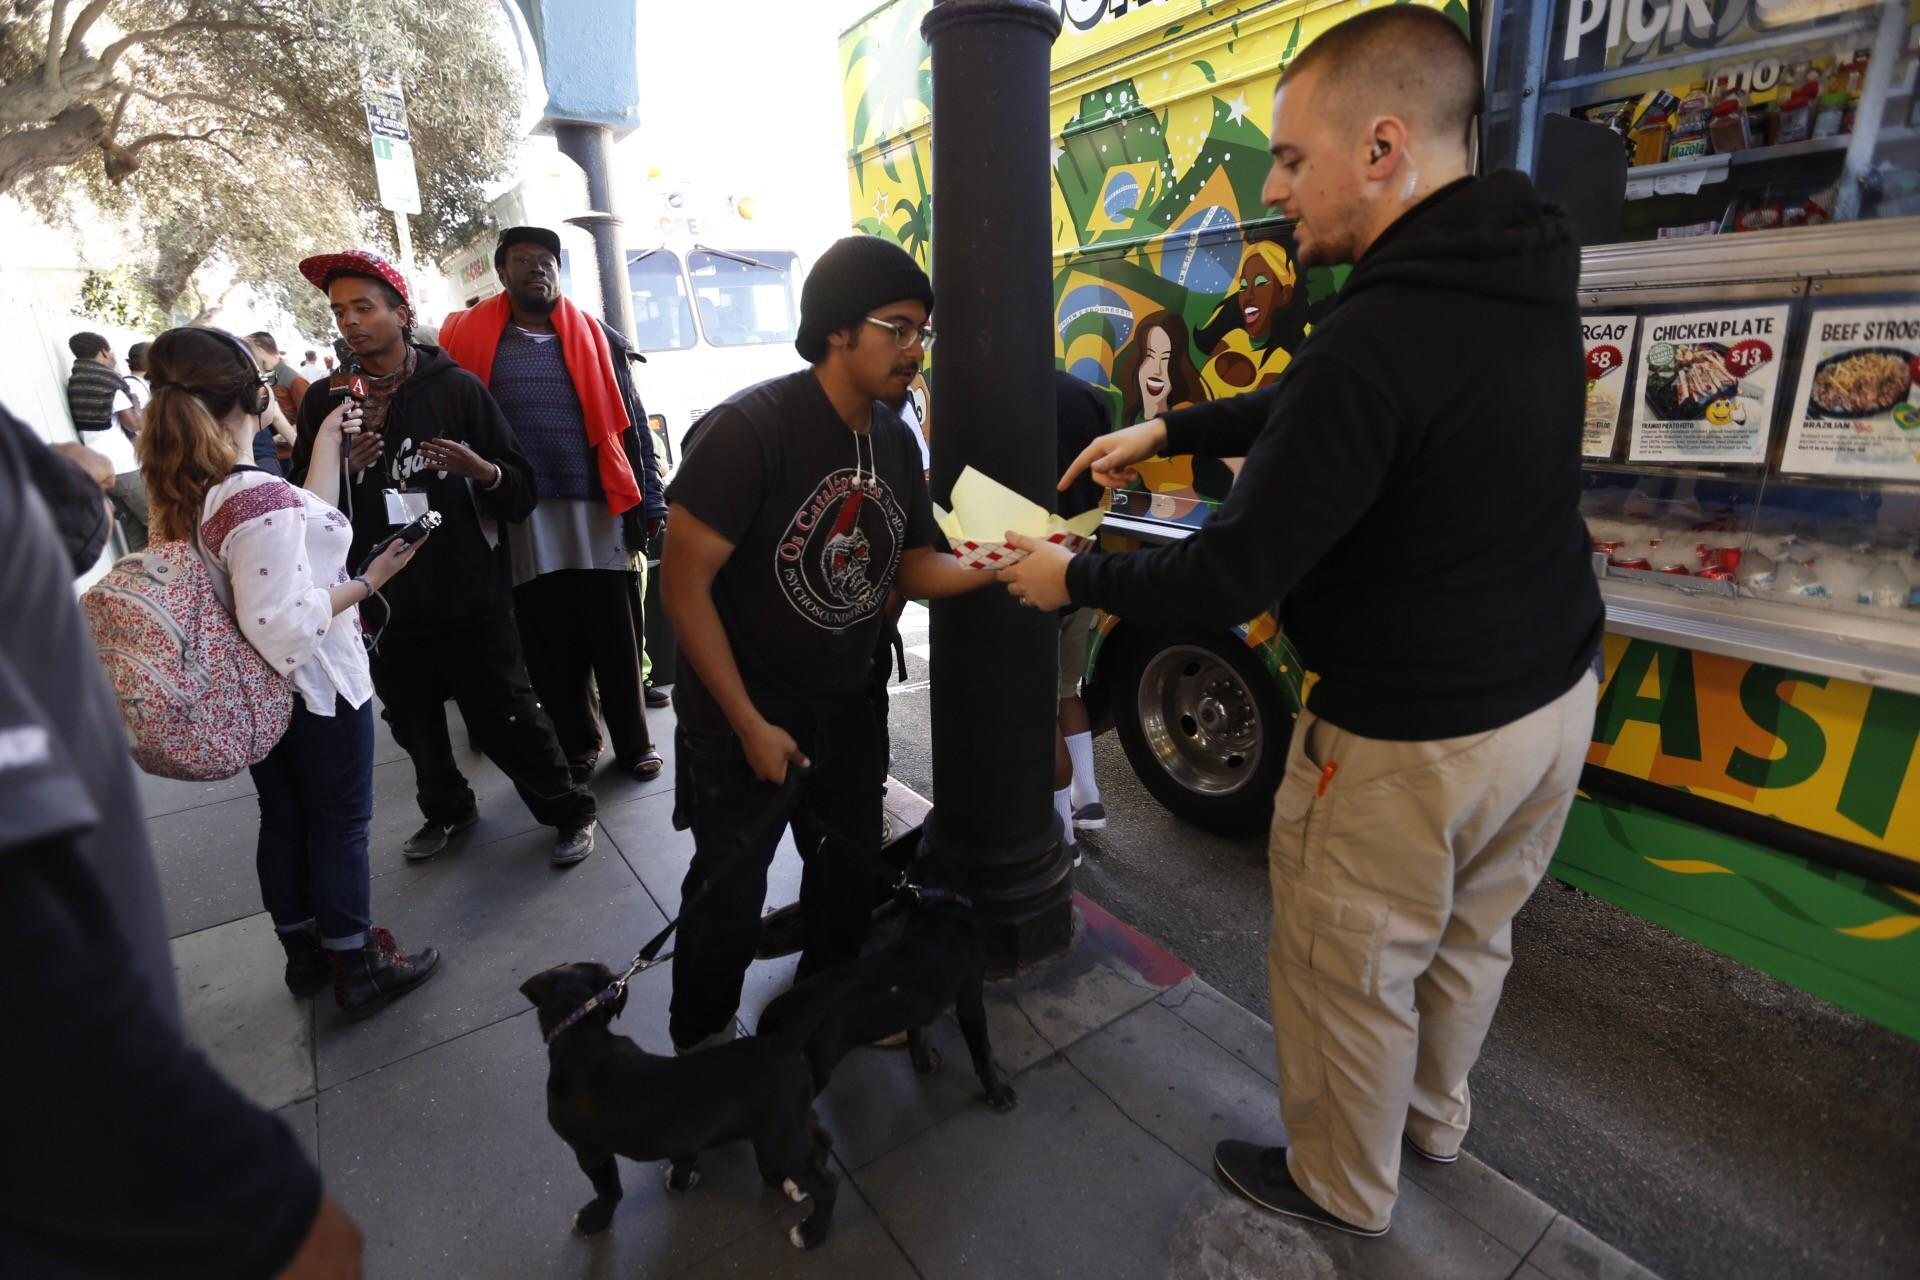 A security guard helps hand out food from a food truck paid for by Snap